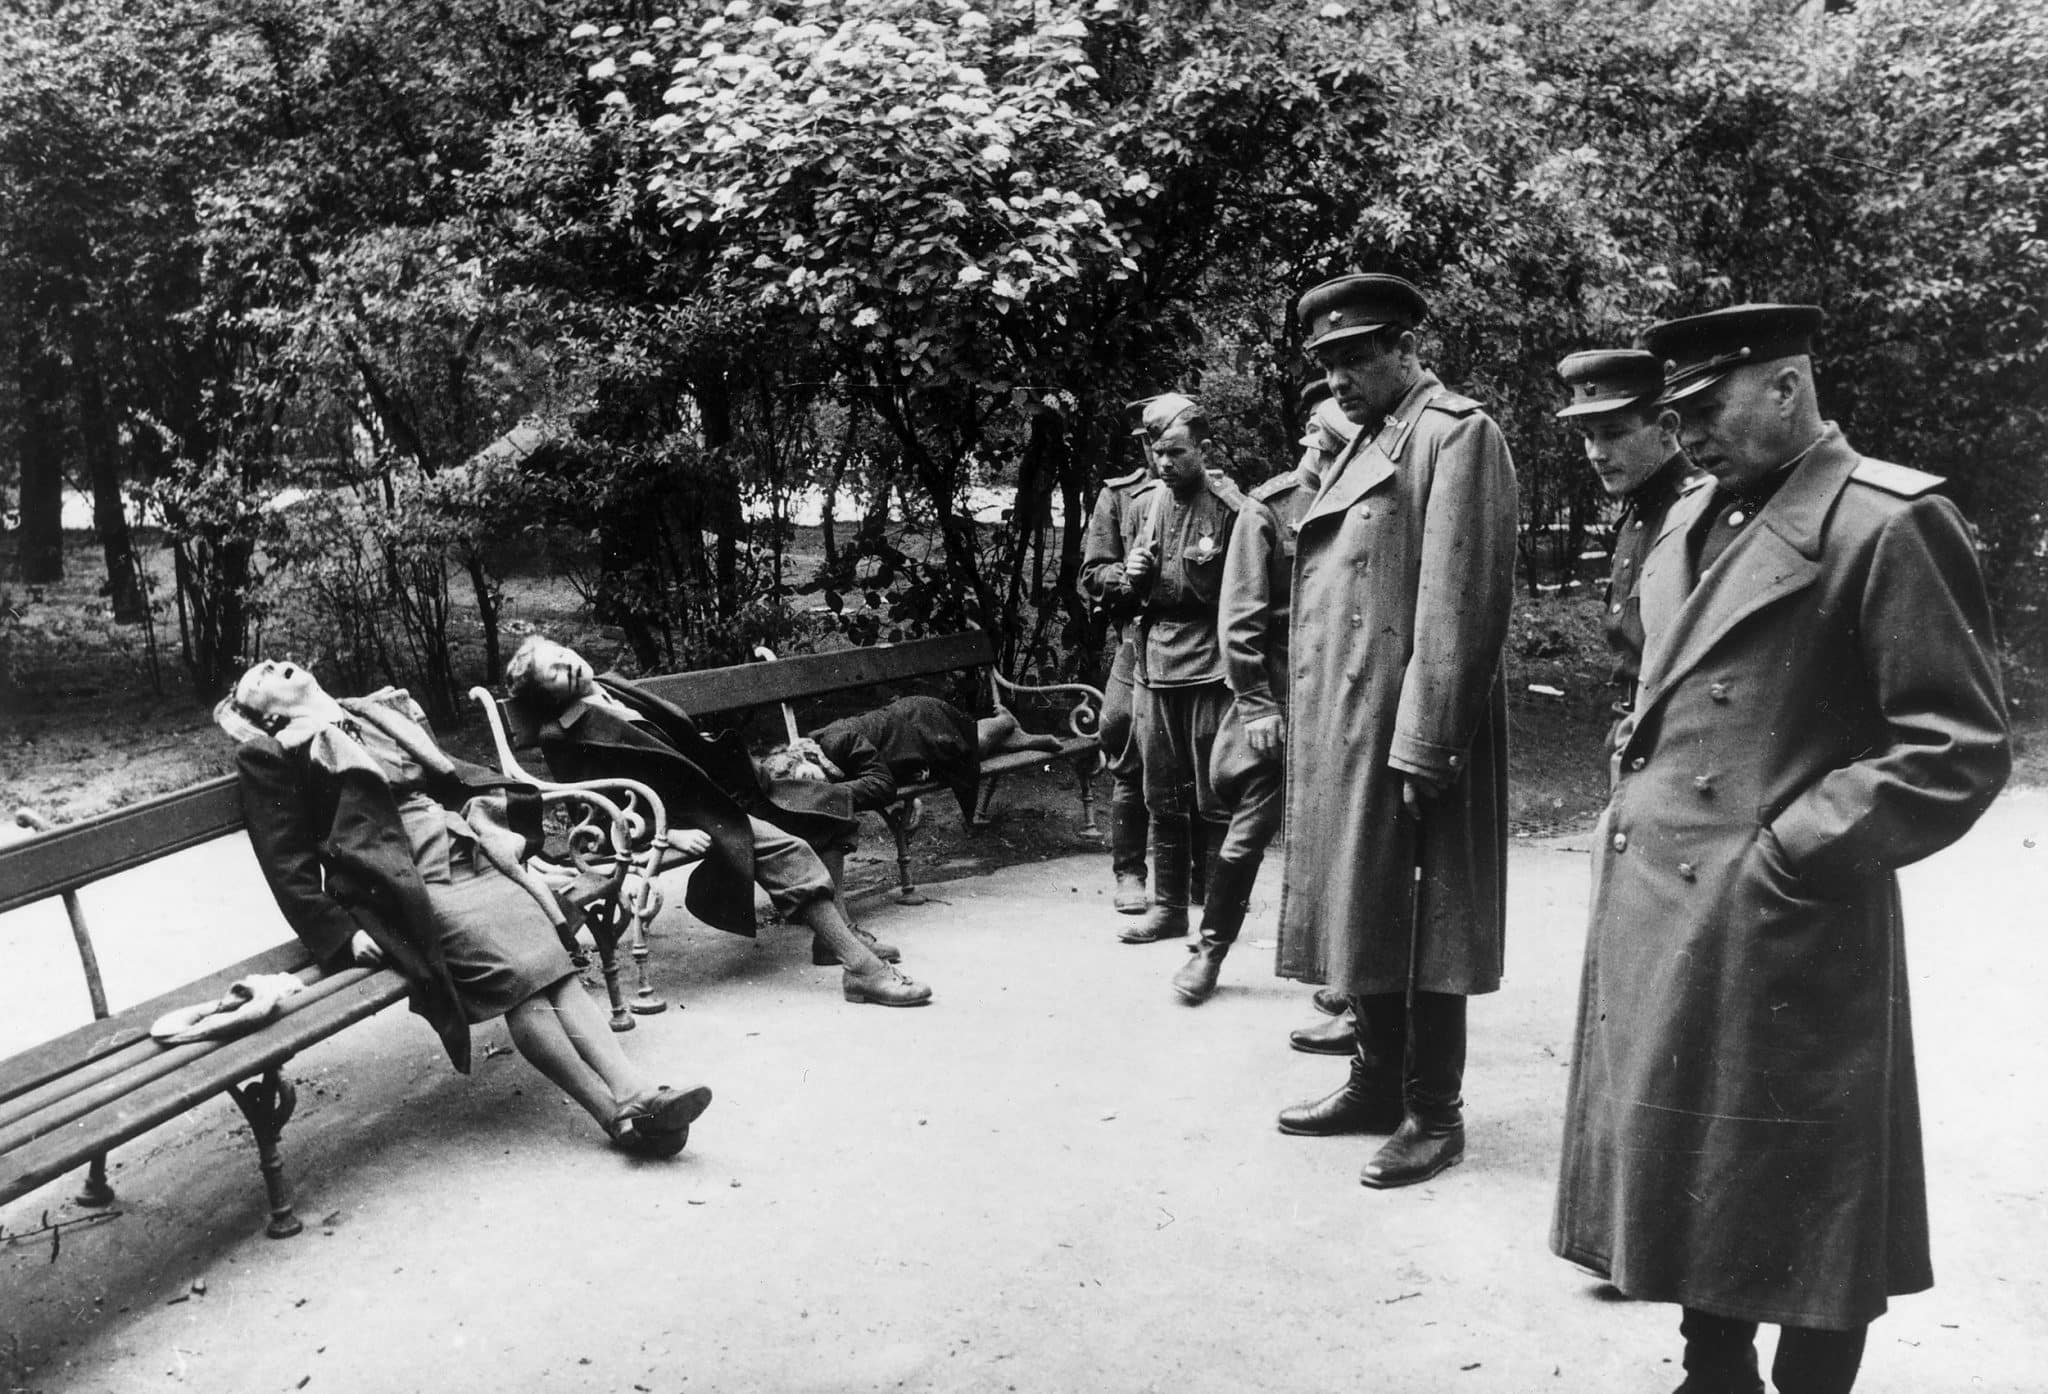 Mass suicides such as this discovered by the Soviets in Vienna would be a feature of Berliner lives in April 1945 - a month where almost 4,000 suicides would be official registered